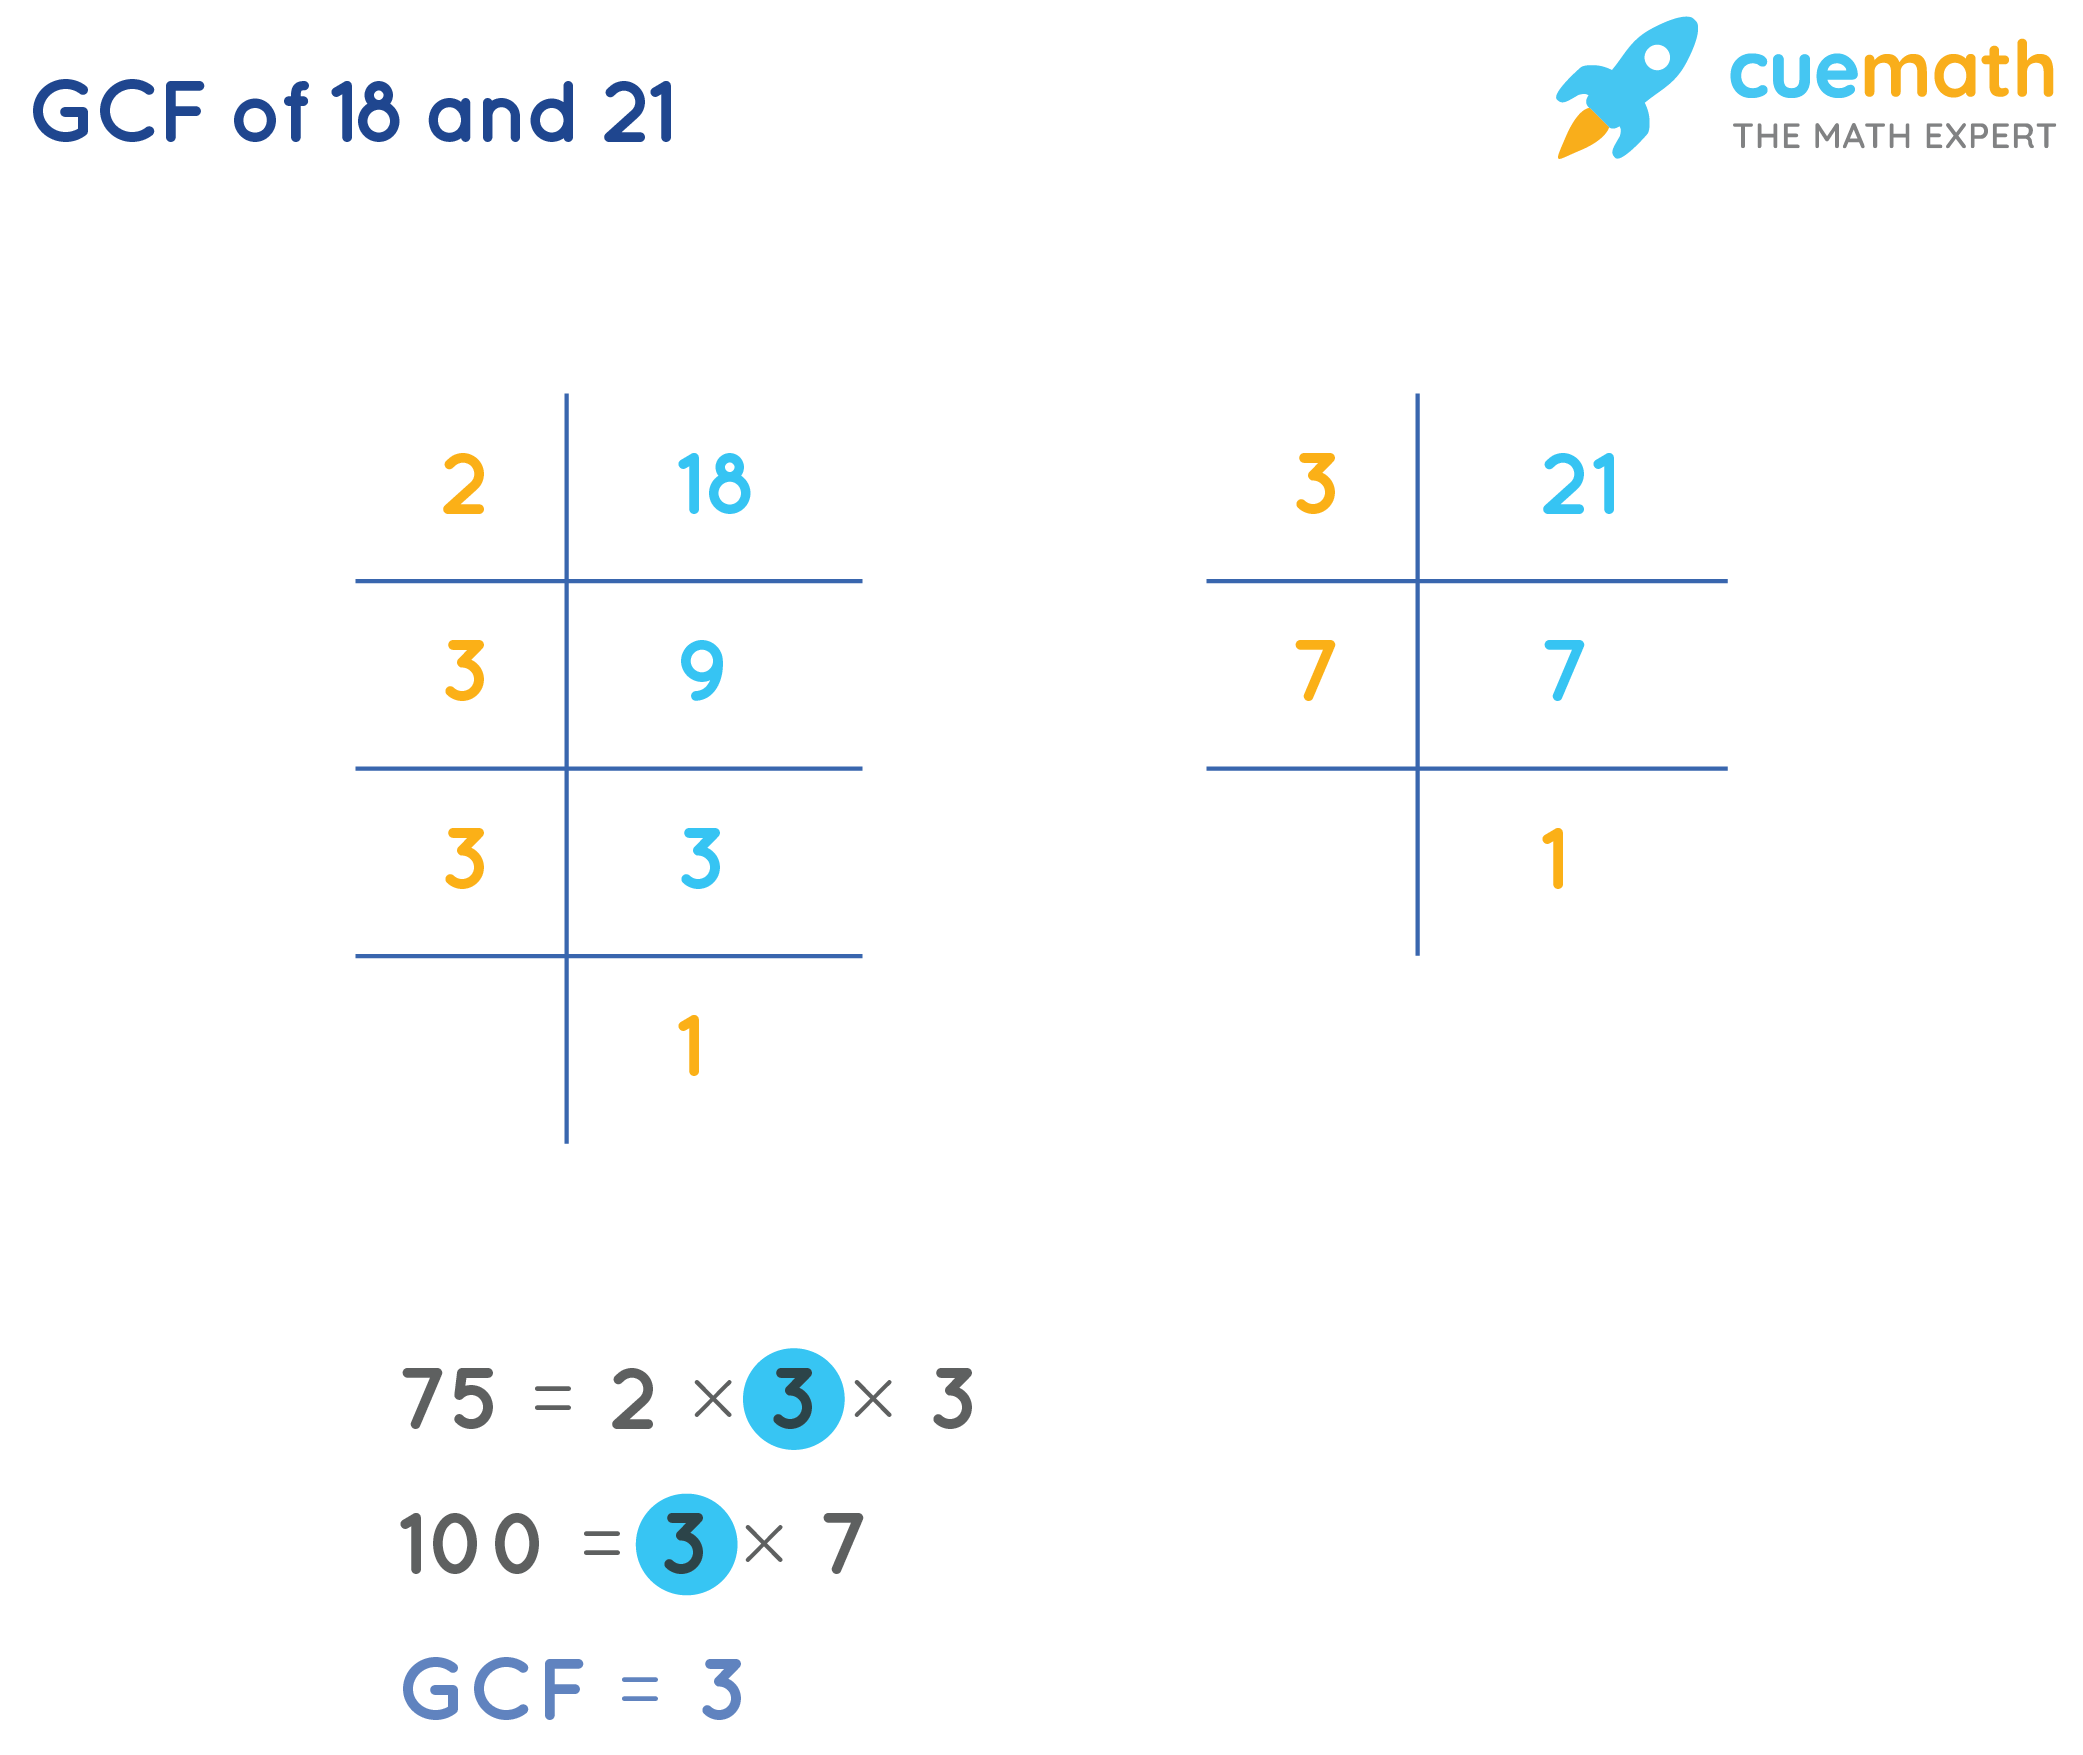 GCF of 18and 21by prime factorization